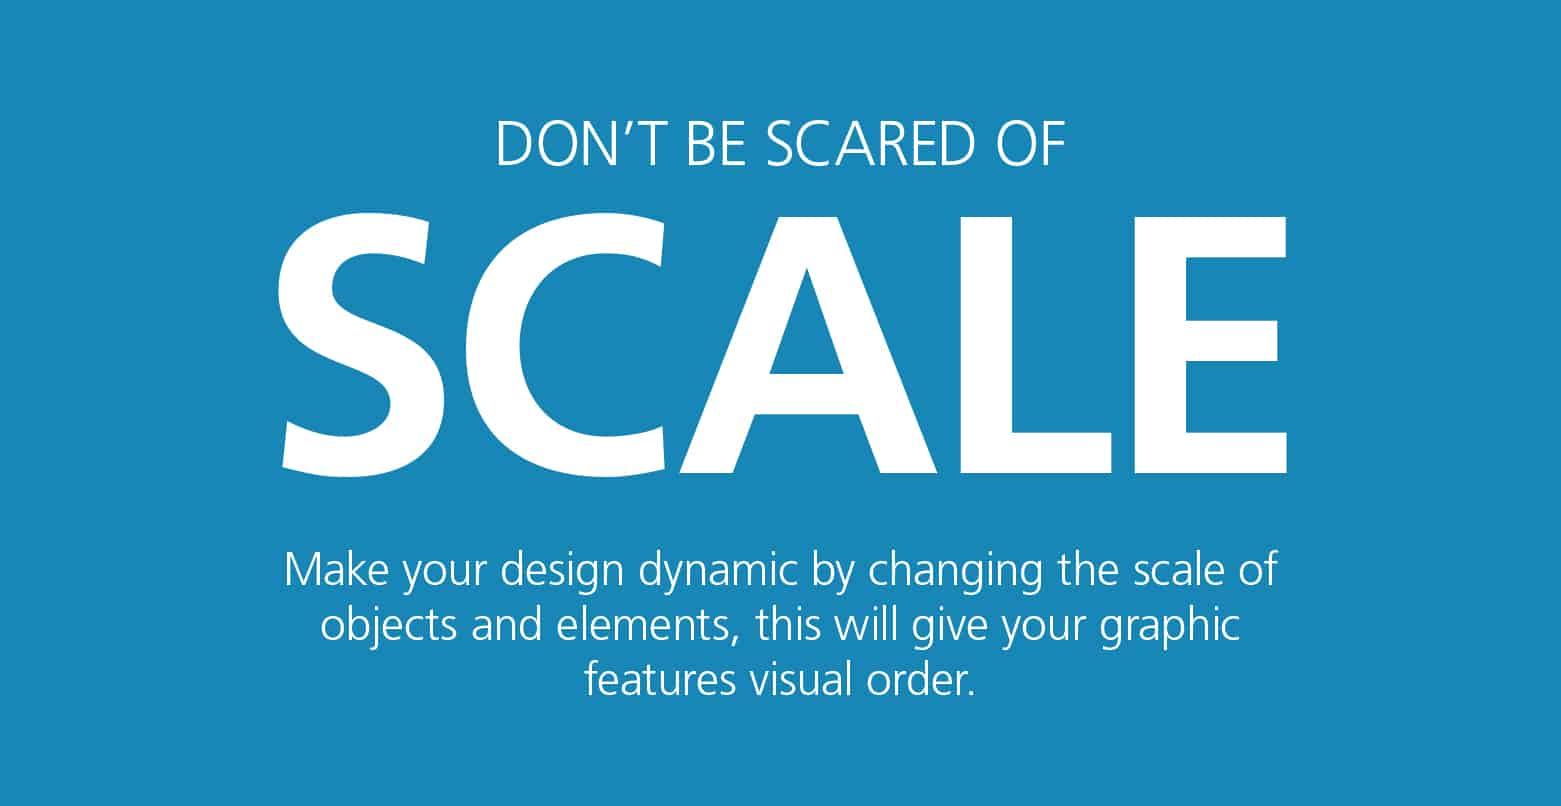 Graphic Design Tips - Don't be scared of scale